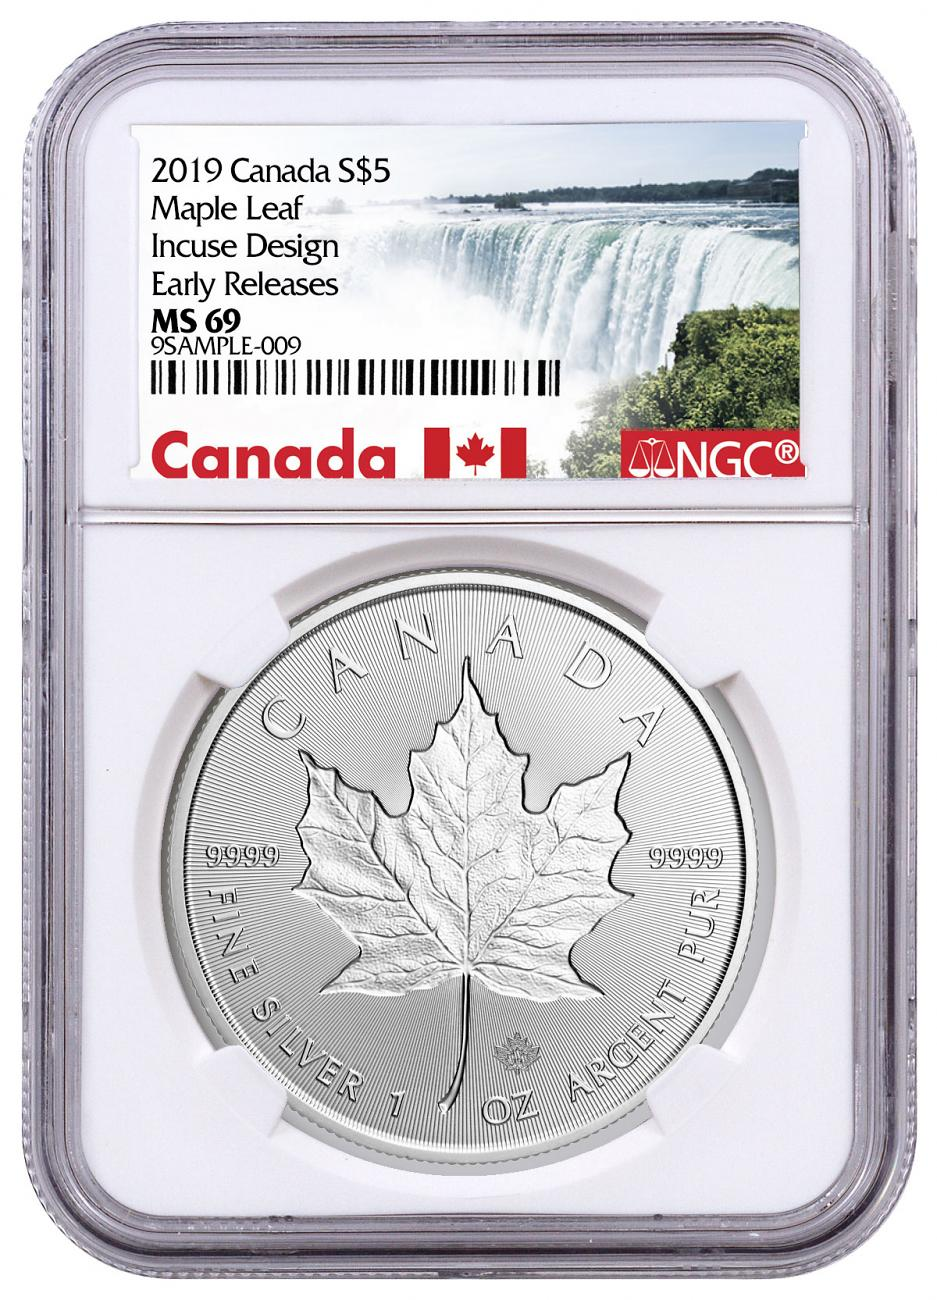 2019 Canada 1 oz Silver Maple Leaf - Incuse $5 Coin NGC MS69 ER Exclusive Canada Label